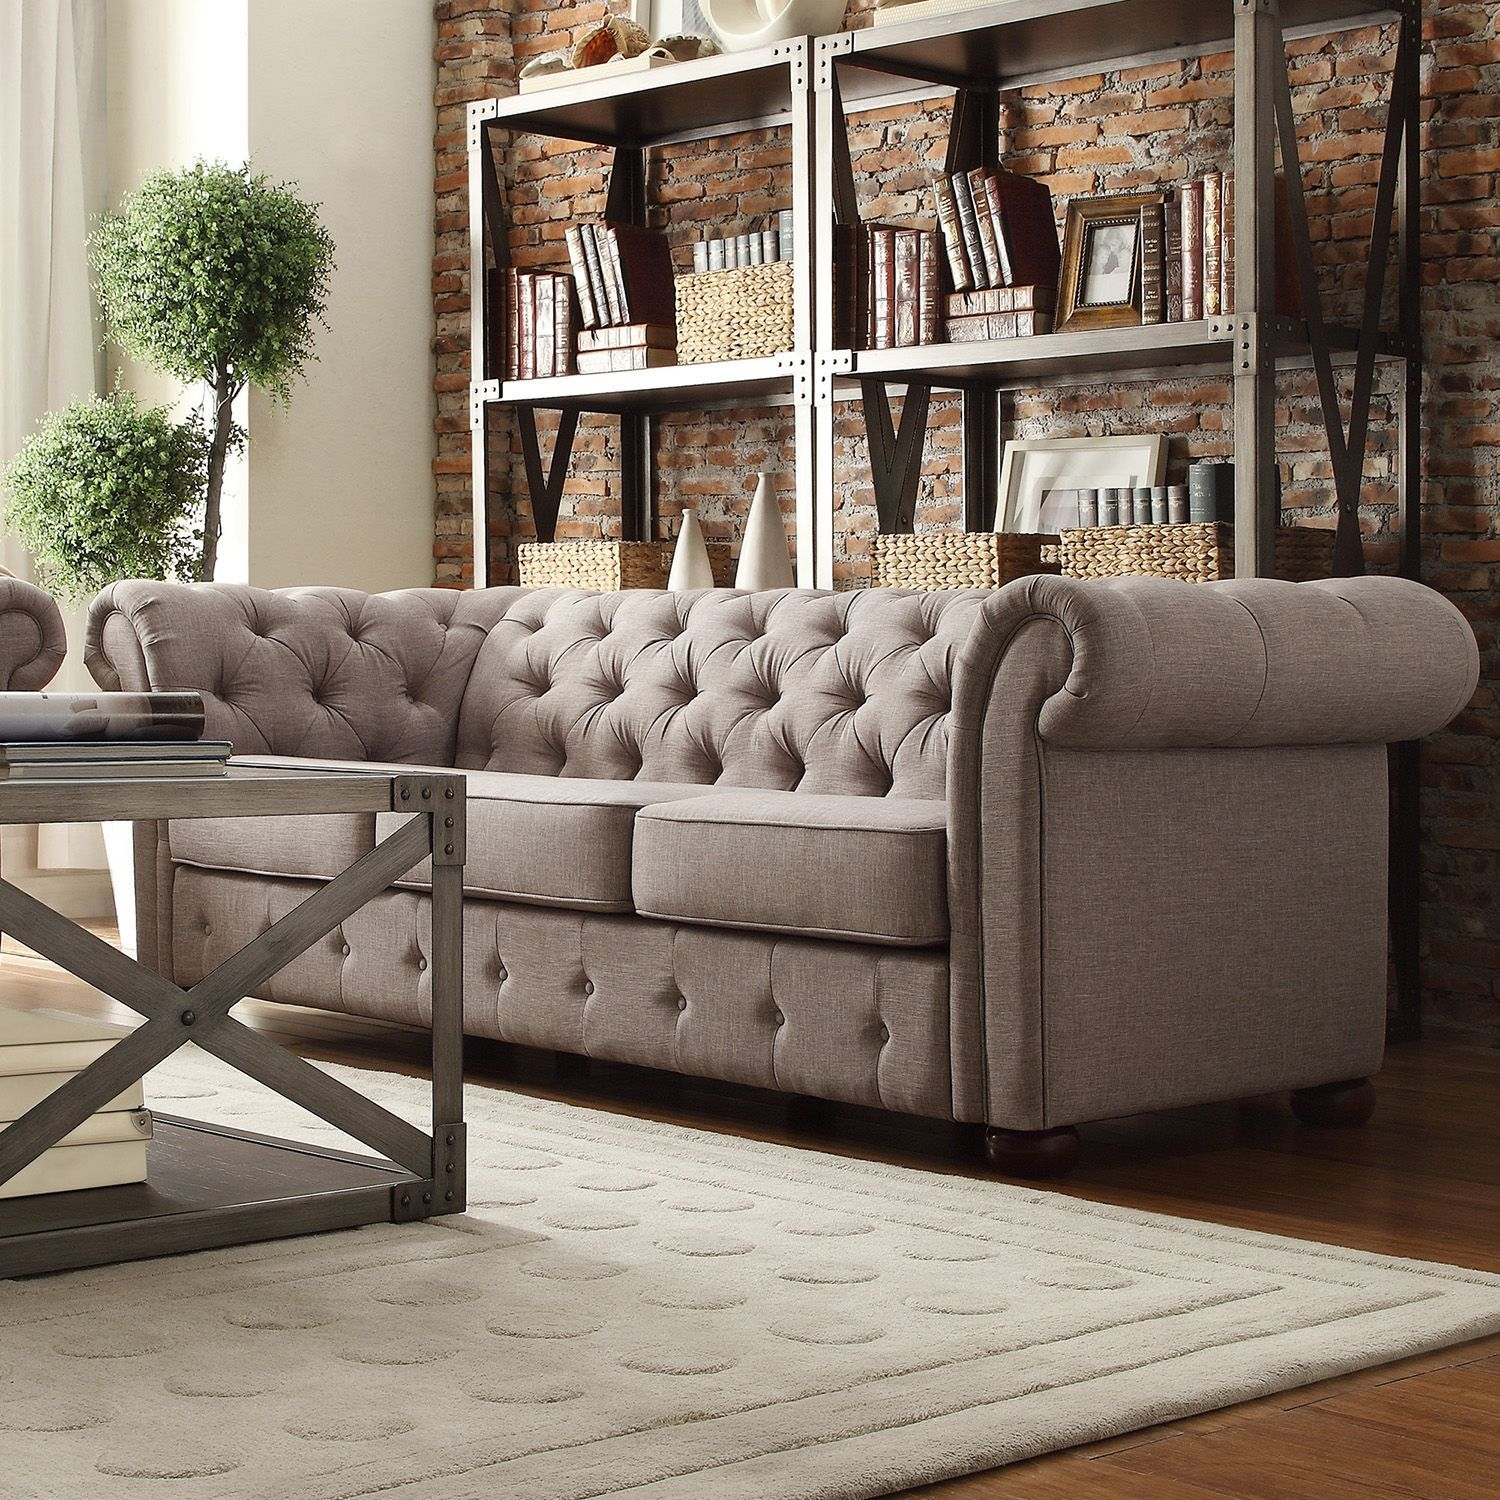 Kyle Tufted Linen Sofa Choose Color Sam s Club MAJOR OPTION